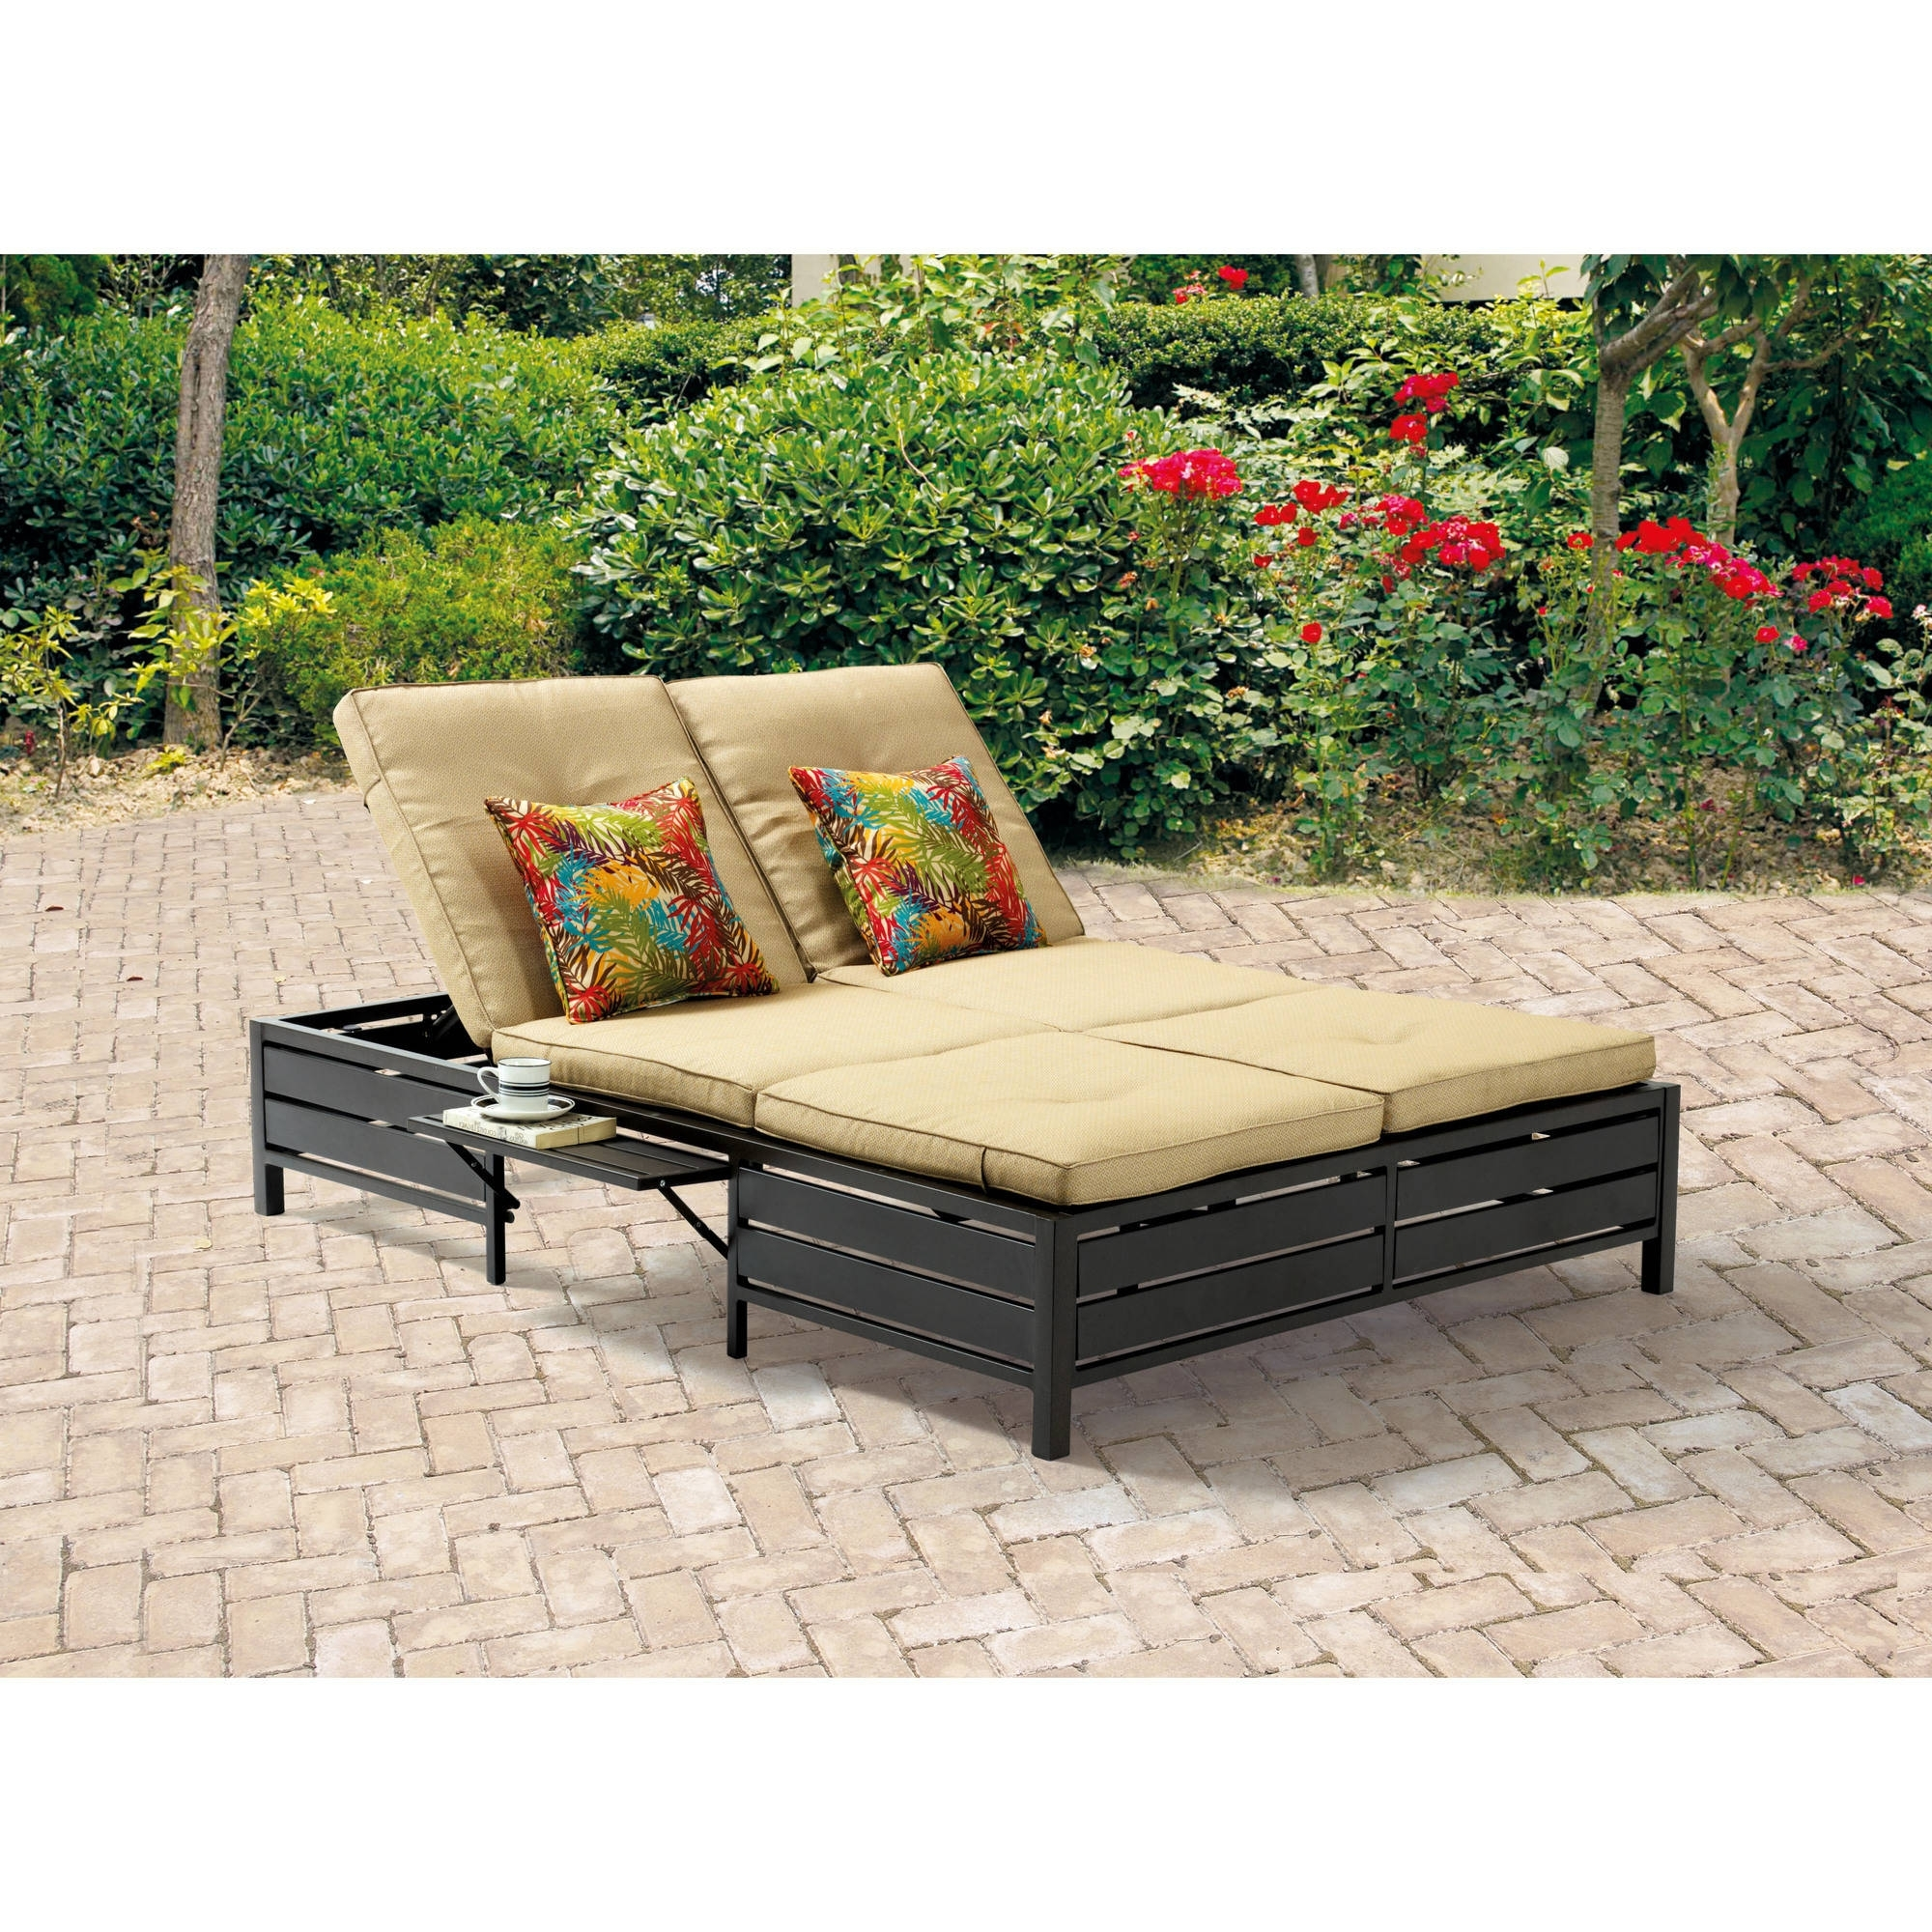 Most Popular Double Chaise Lounges For Outdoor With Regard To Mainstays Outdoor Double Chaise Lounger, Tan, Seats 2 – Walmart (View 11 of 15)